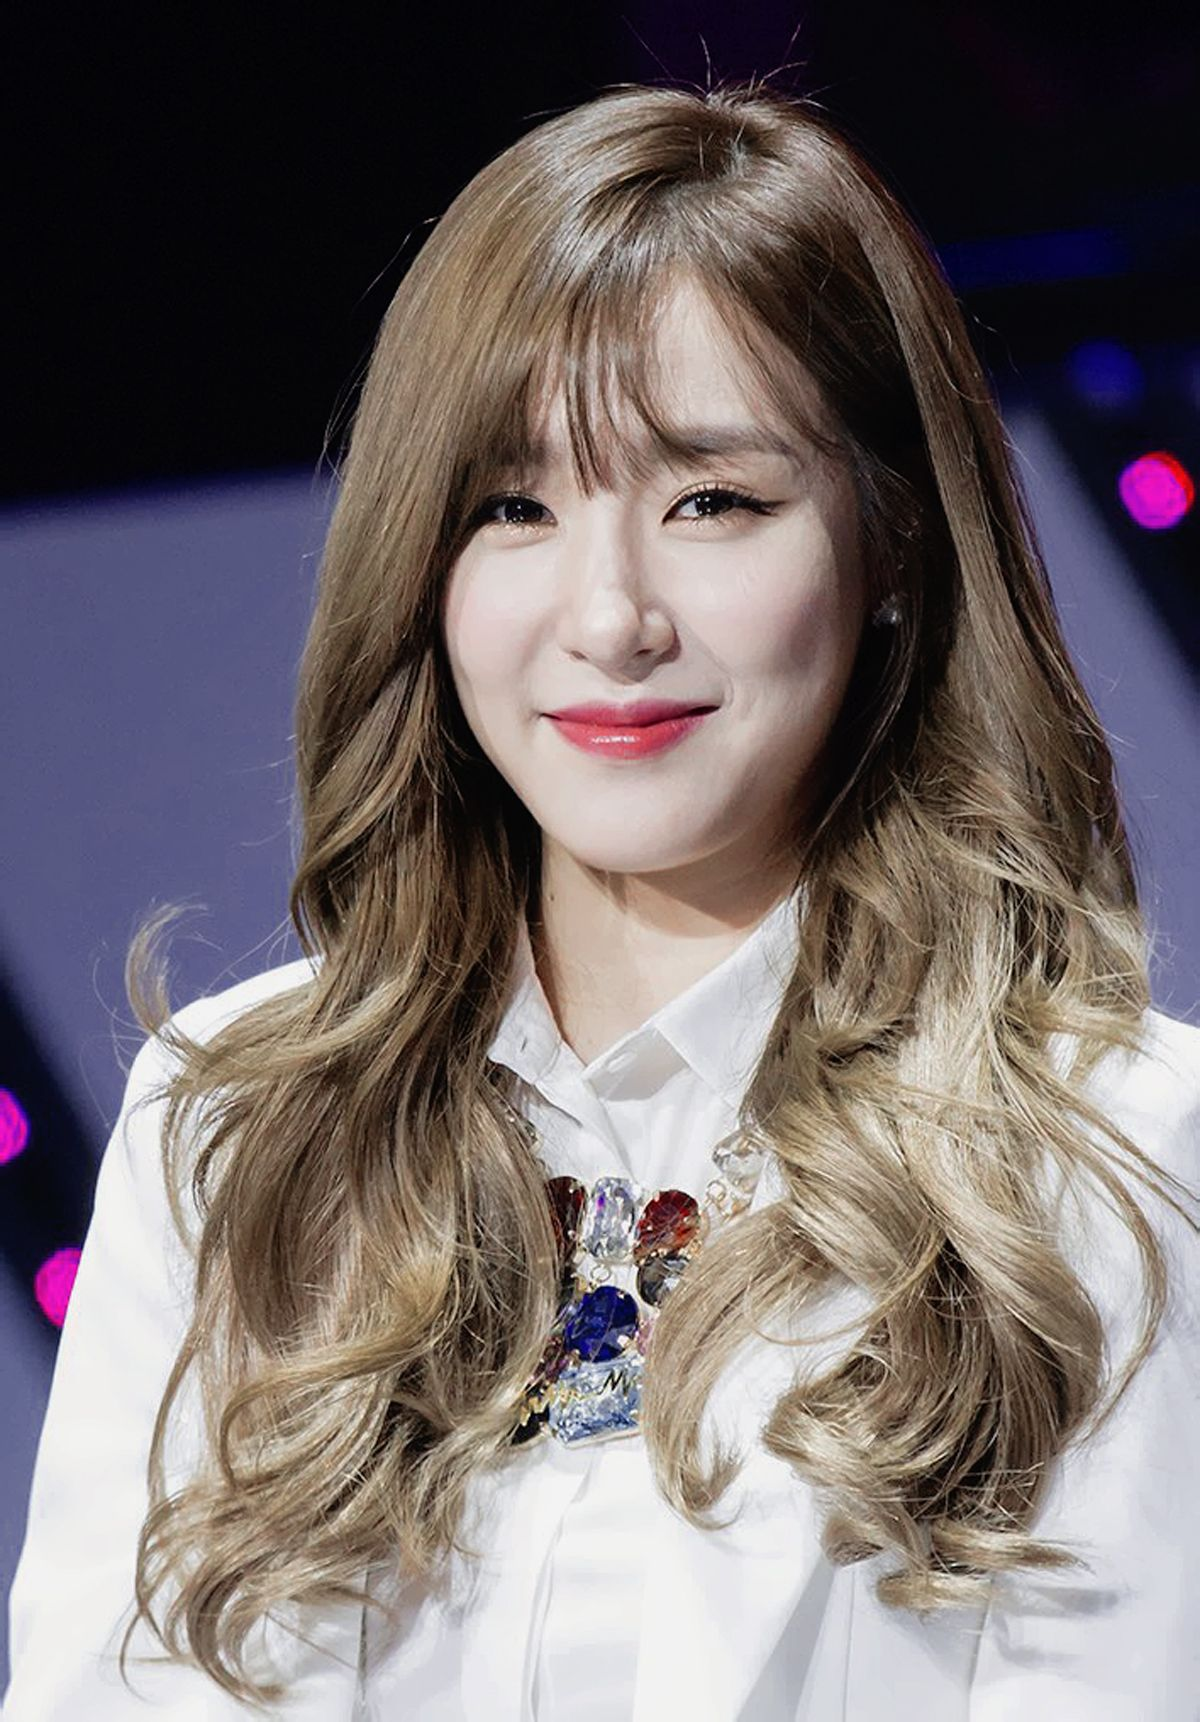 #tiffany #young #gilrsgeneration #girls #snsd #kpop #tiffanyyoung